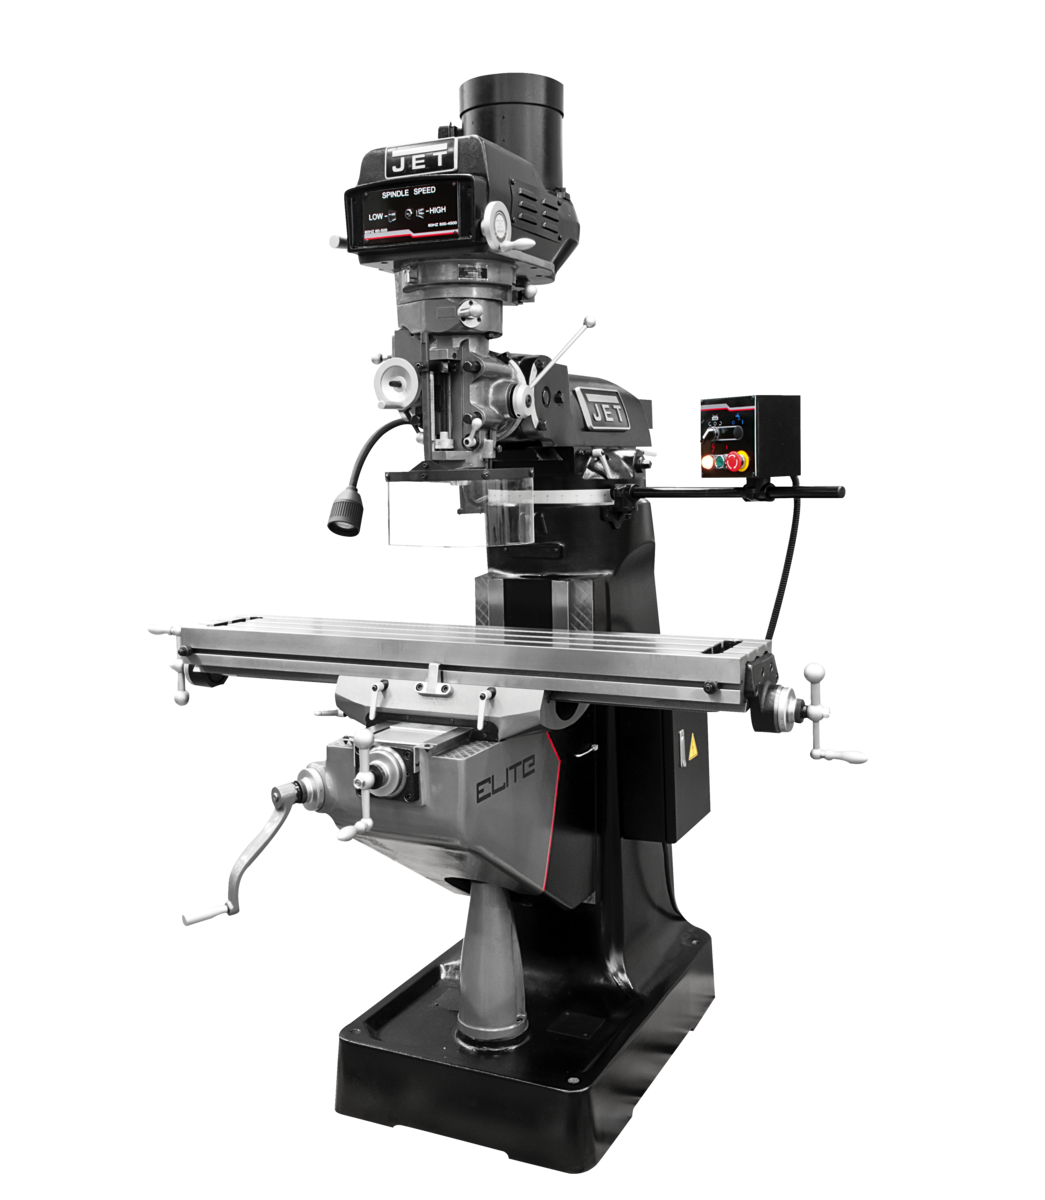 ETM-949 Mill with 3-Axis ACU-RITE 303  (Knee) DRO and X, Y-Axis JET Powerfeeds